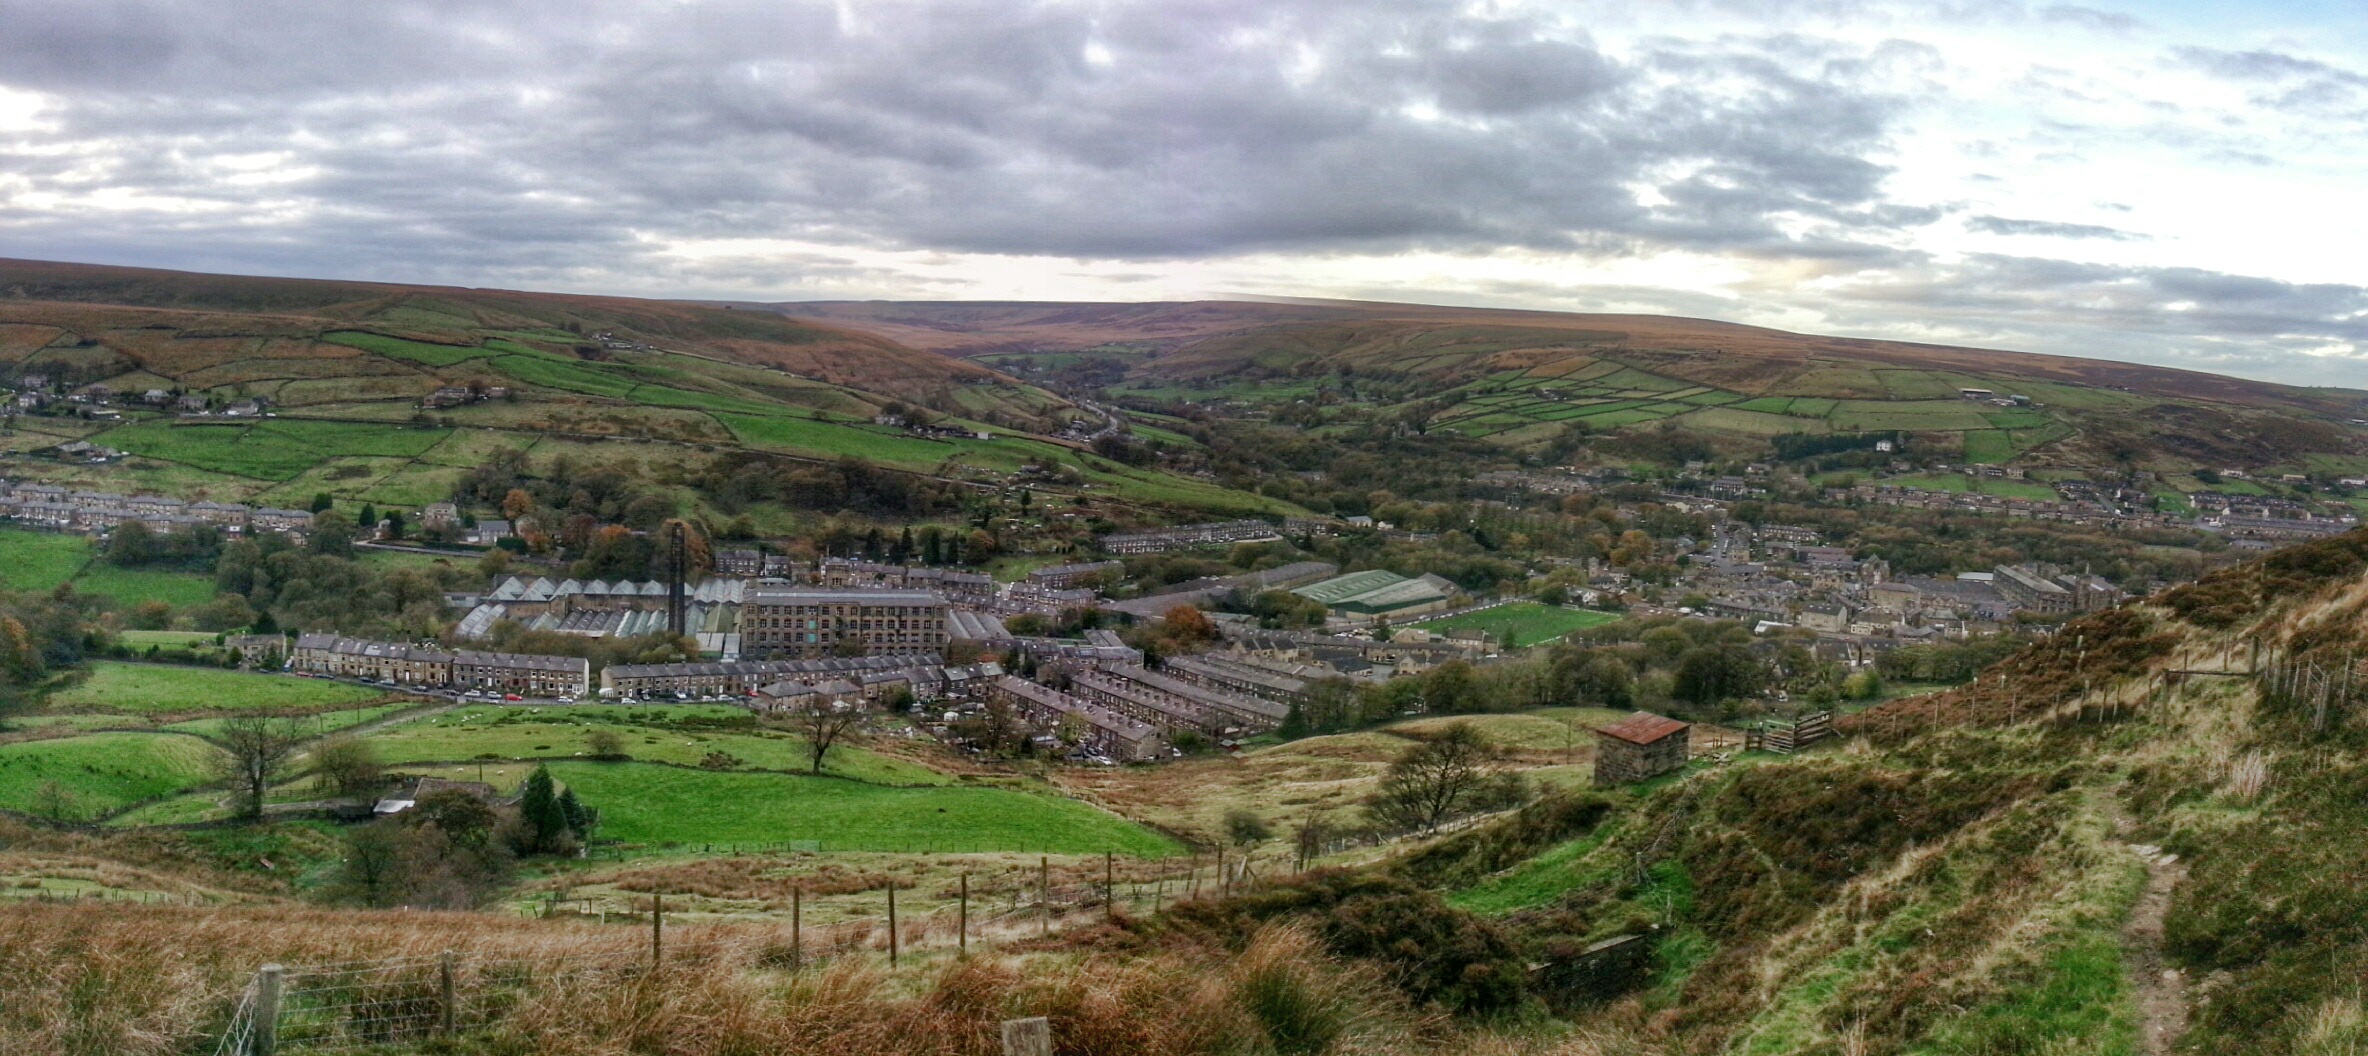 Marsden West Yorkshire